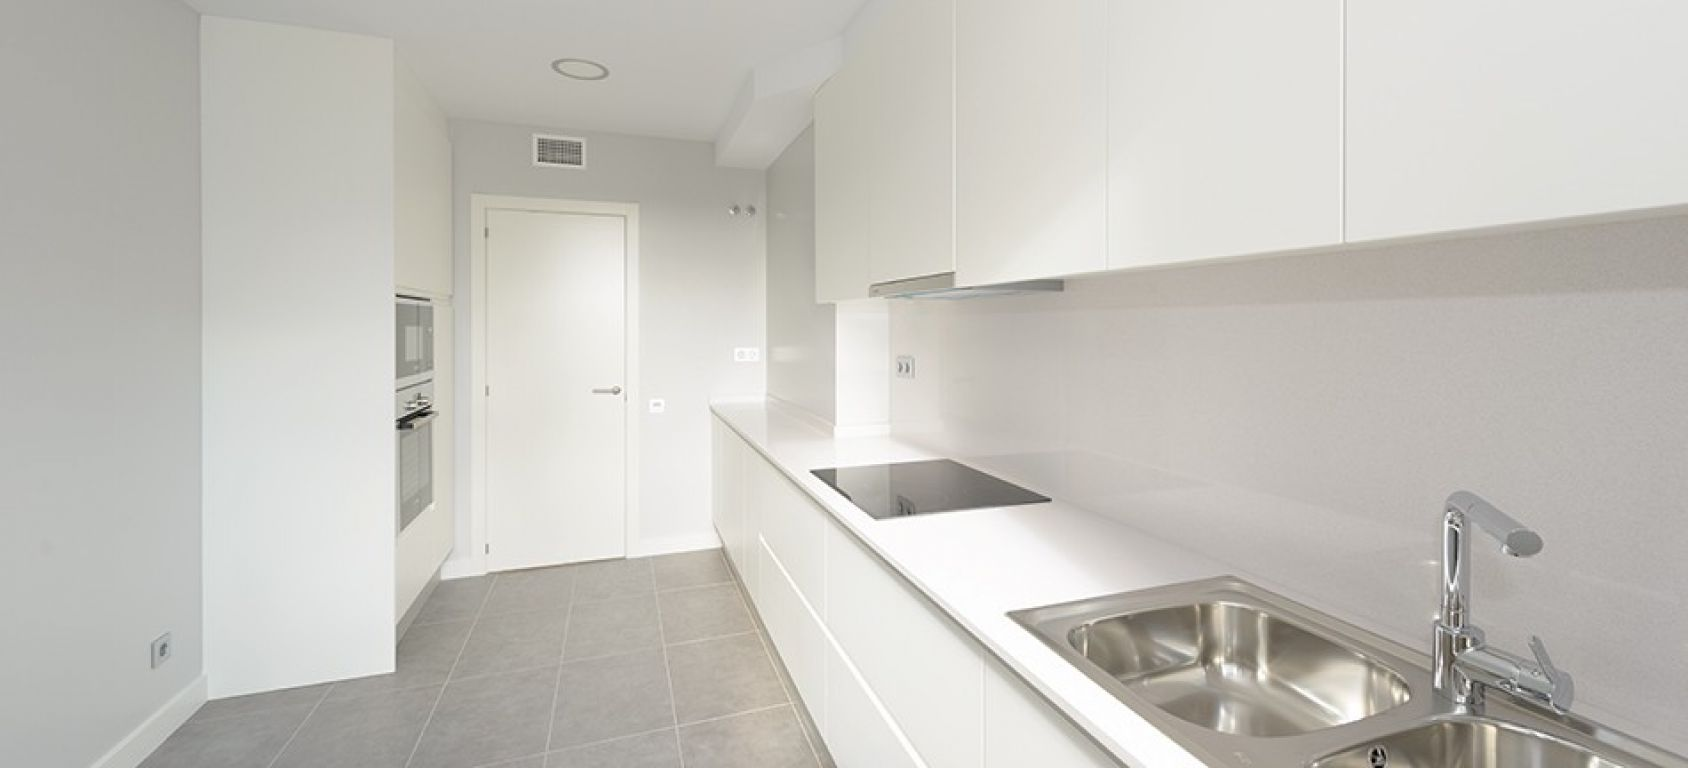 New home - Flat in, 106 m², close to bus and metro, new